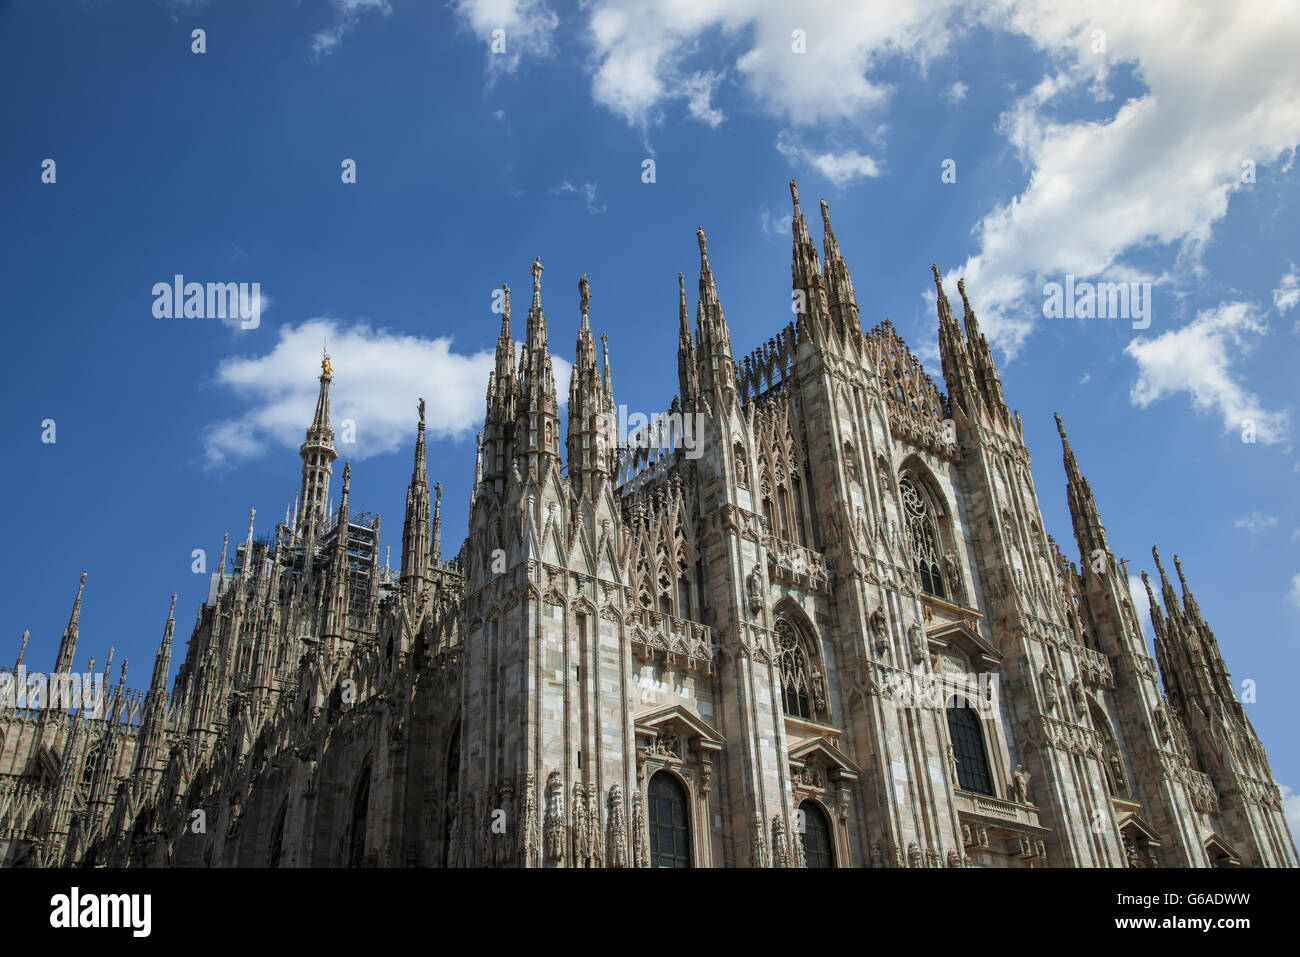 Duomo di milano, Milan Cathedral, symbol of the Lombardy and throughout Italy - Stock Image